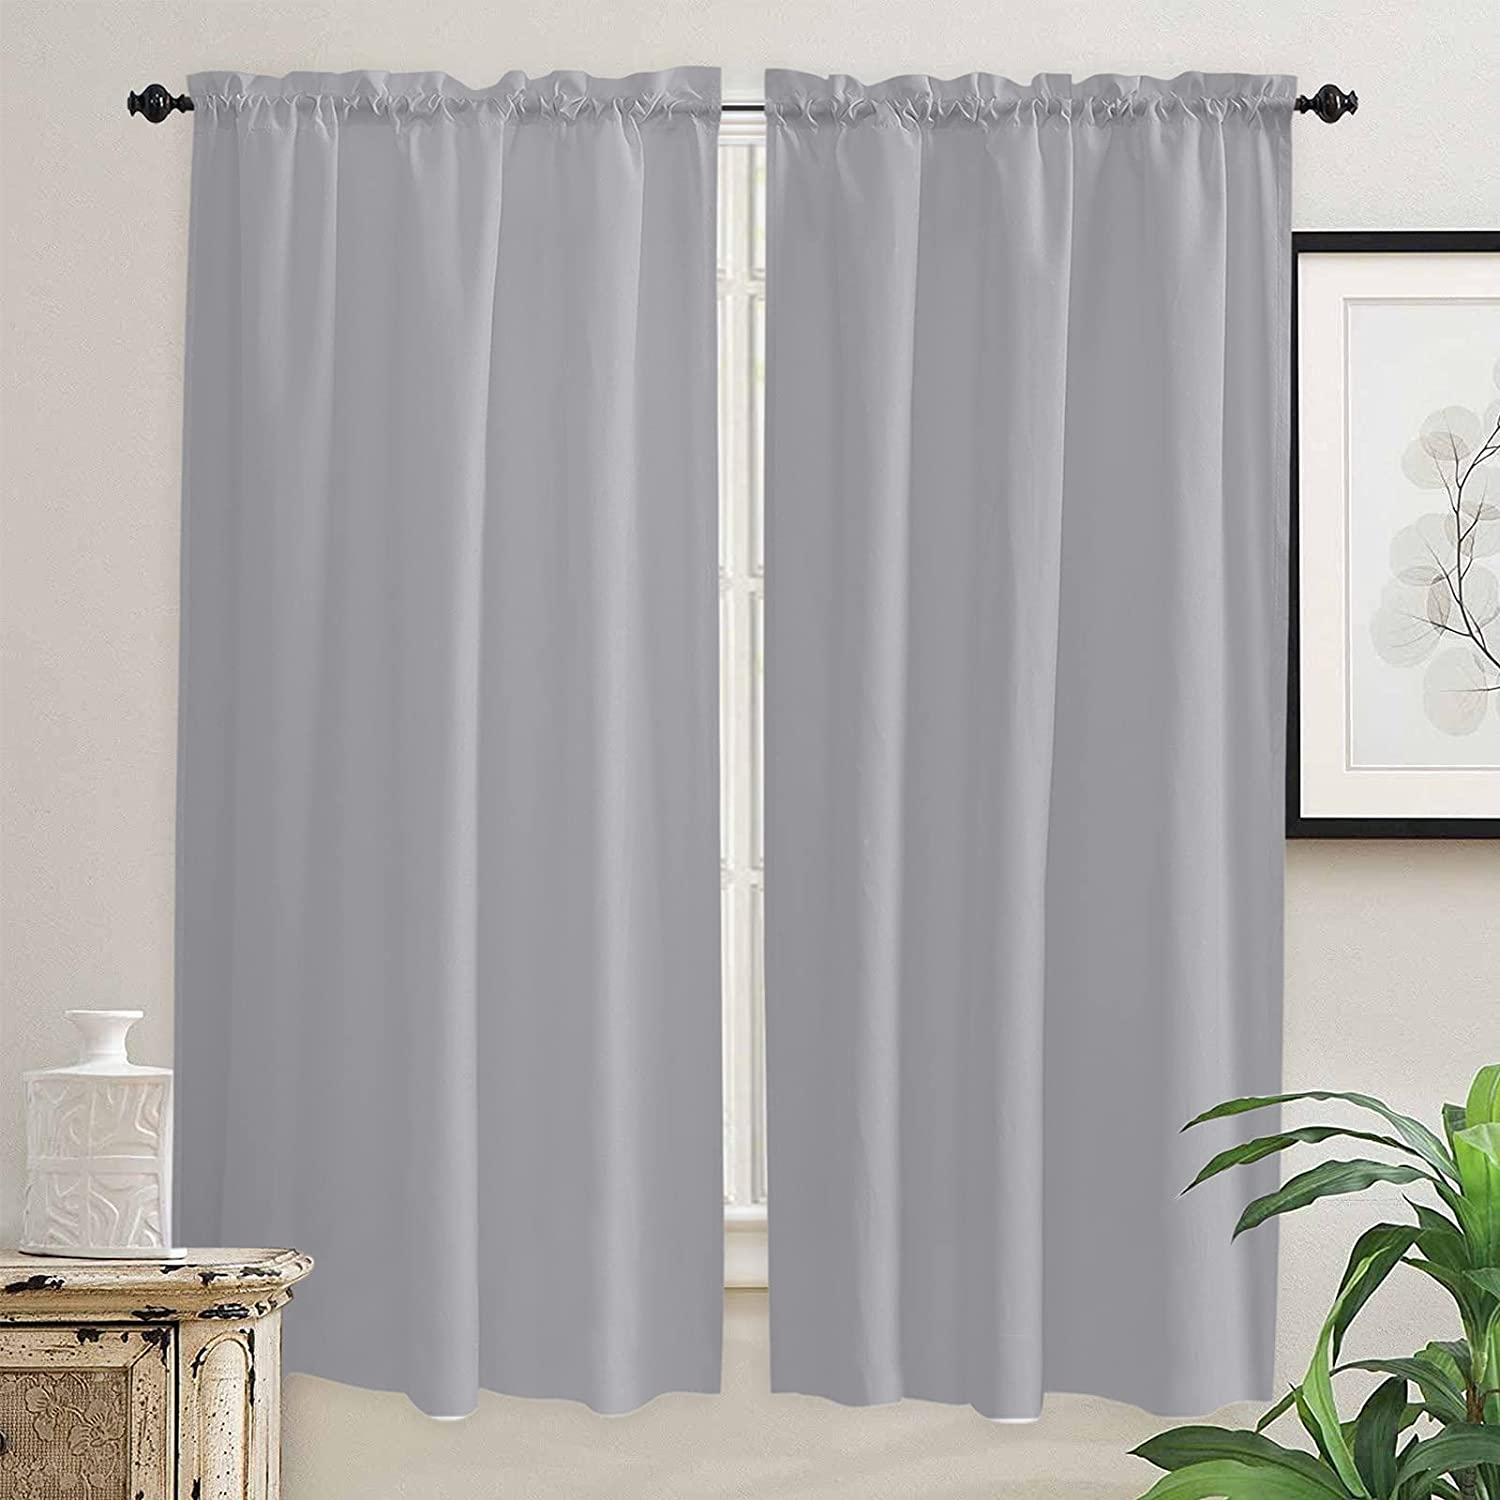 Jacksonville Mall Max 51% OFF Grey Solid Color Kitchen Curtains 72 for Length Inch Wi Windows